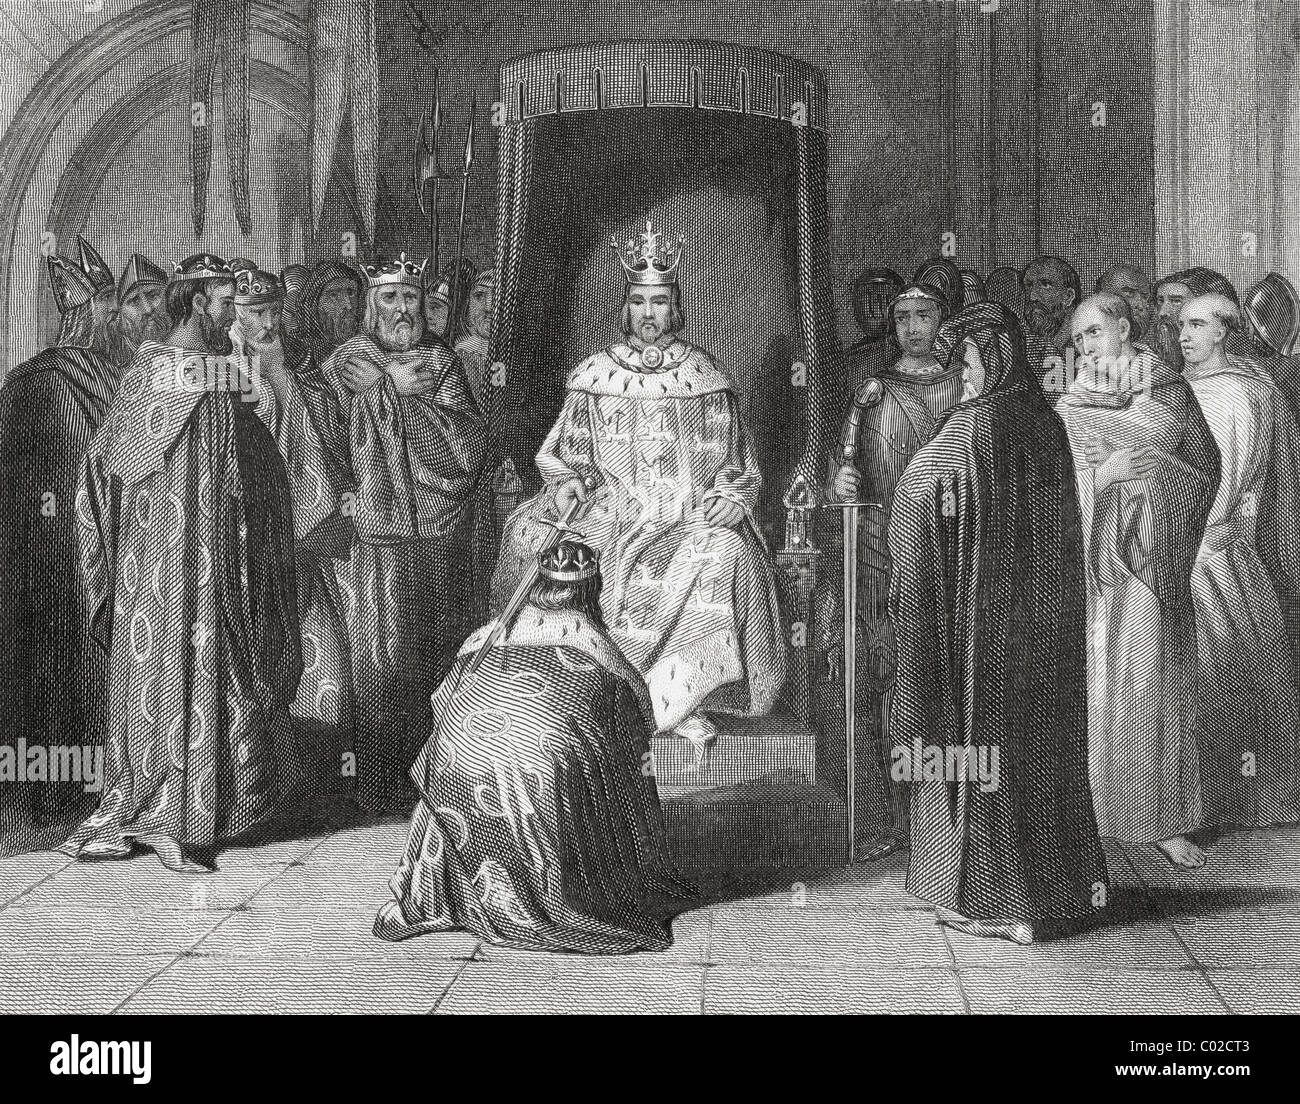 King Richard II knighting the kings of Connaught, Ulster, Thomond and Leinster in 1394. - Stock Image